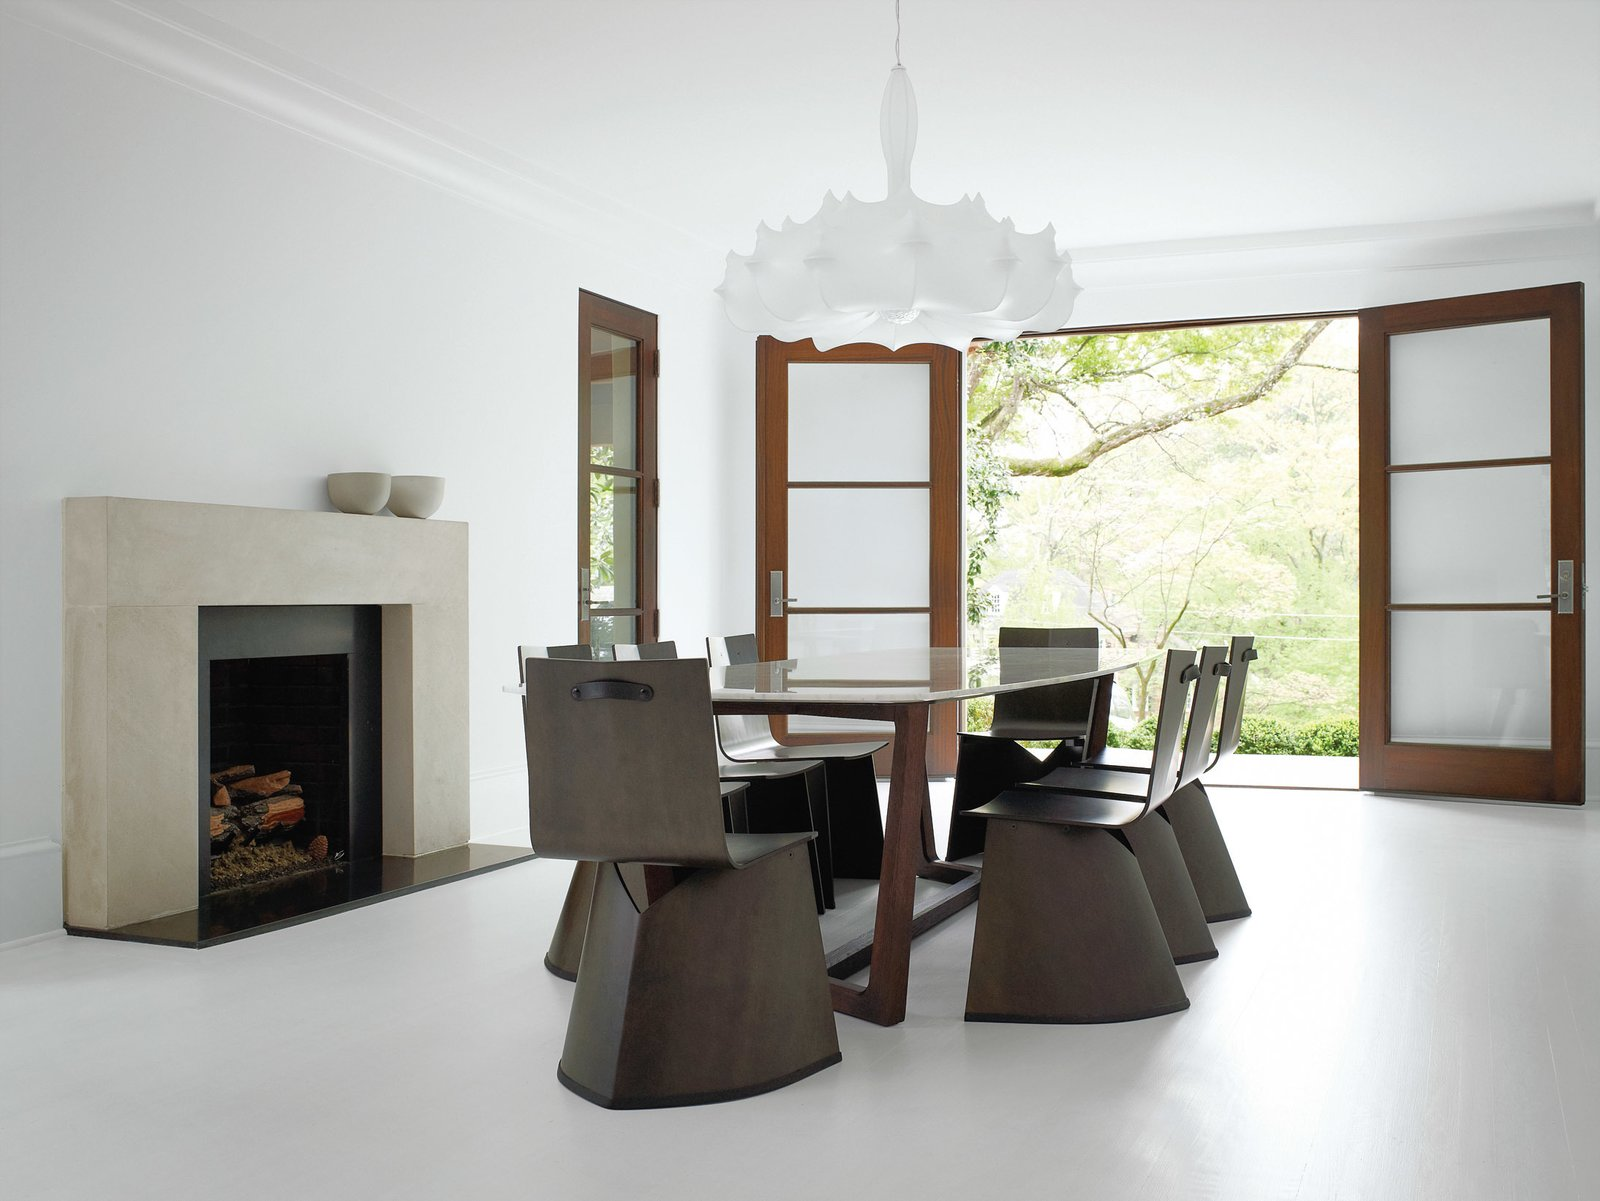 "Dining Room, Chair, Table, and Standard Layout Fireplace Konstantin Grcic's Venus chairs for ClassiCon surround a table by Poliform in the formal dining room. Hill selected the Flos chandelier designed by Marcel Wanders for its ""Old World reverence."" The sleek fireplace mantel was designed by Hill and cobbled together onsite from three solid slabs of limestone.  Best Photos from Barbara Hill on Designing Creative and Comfortable Rooms"